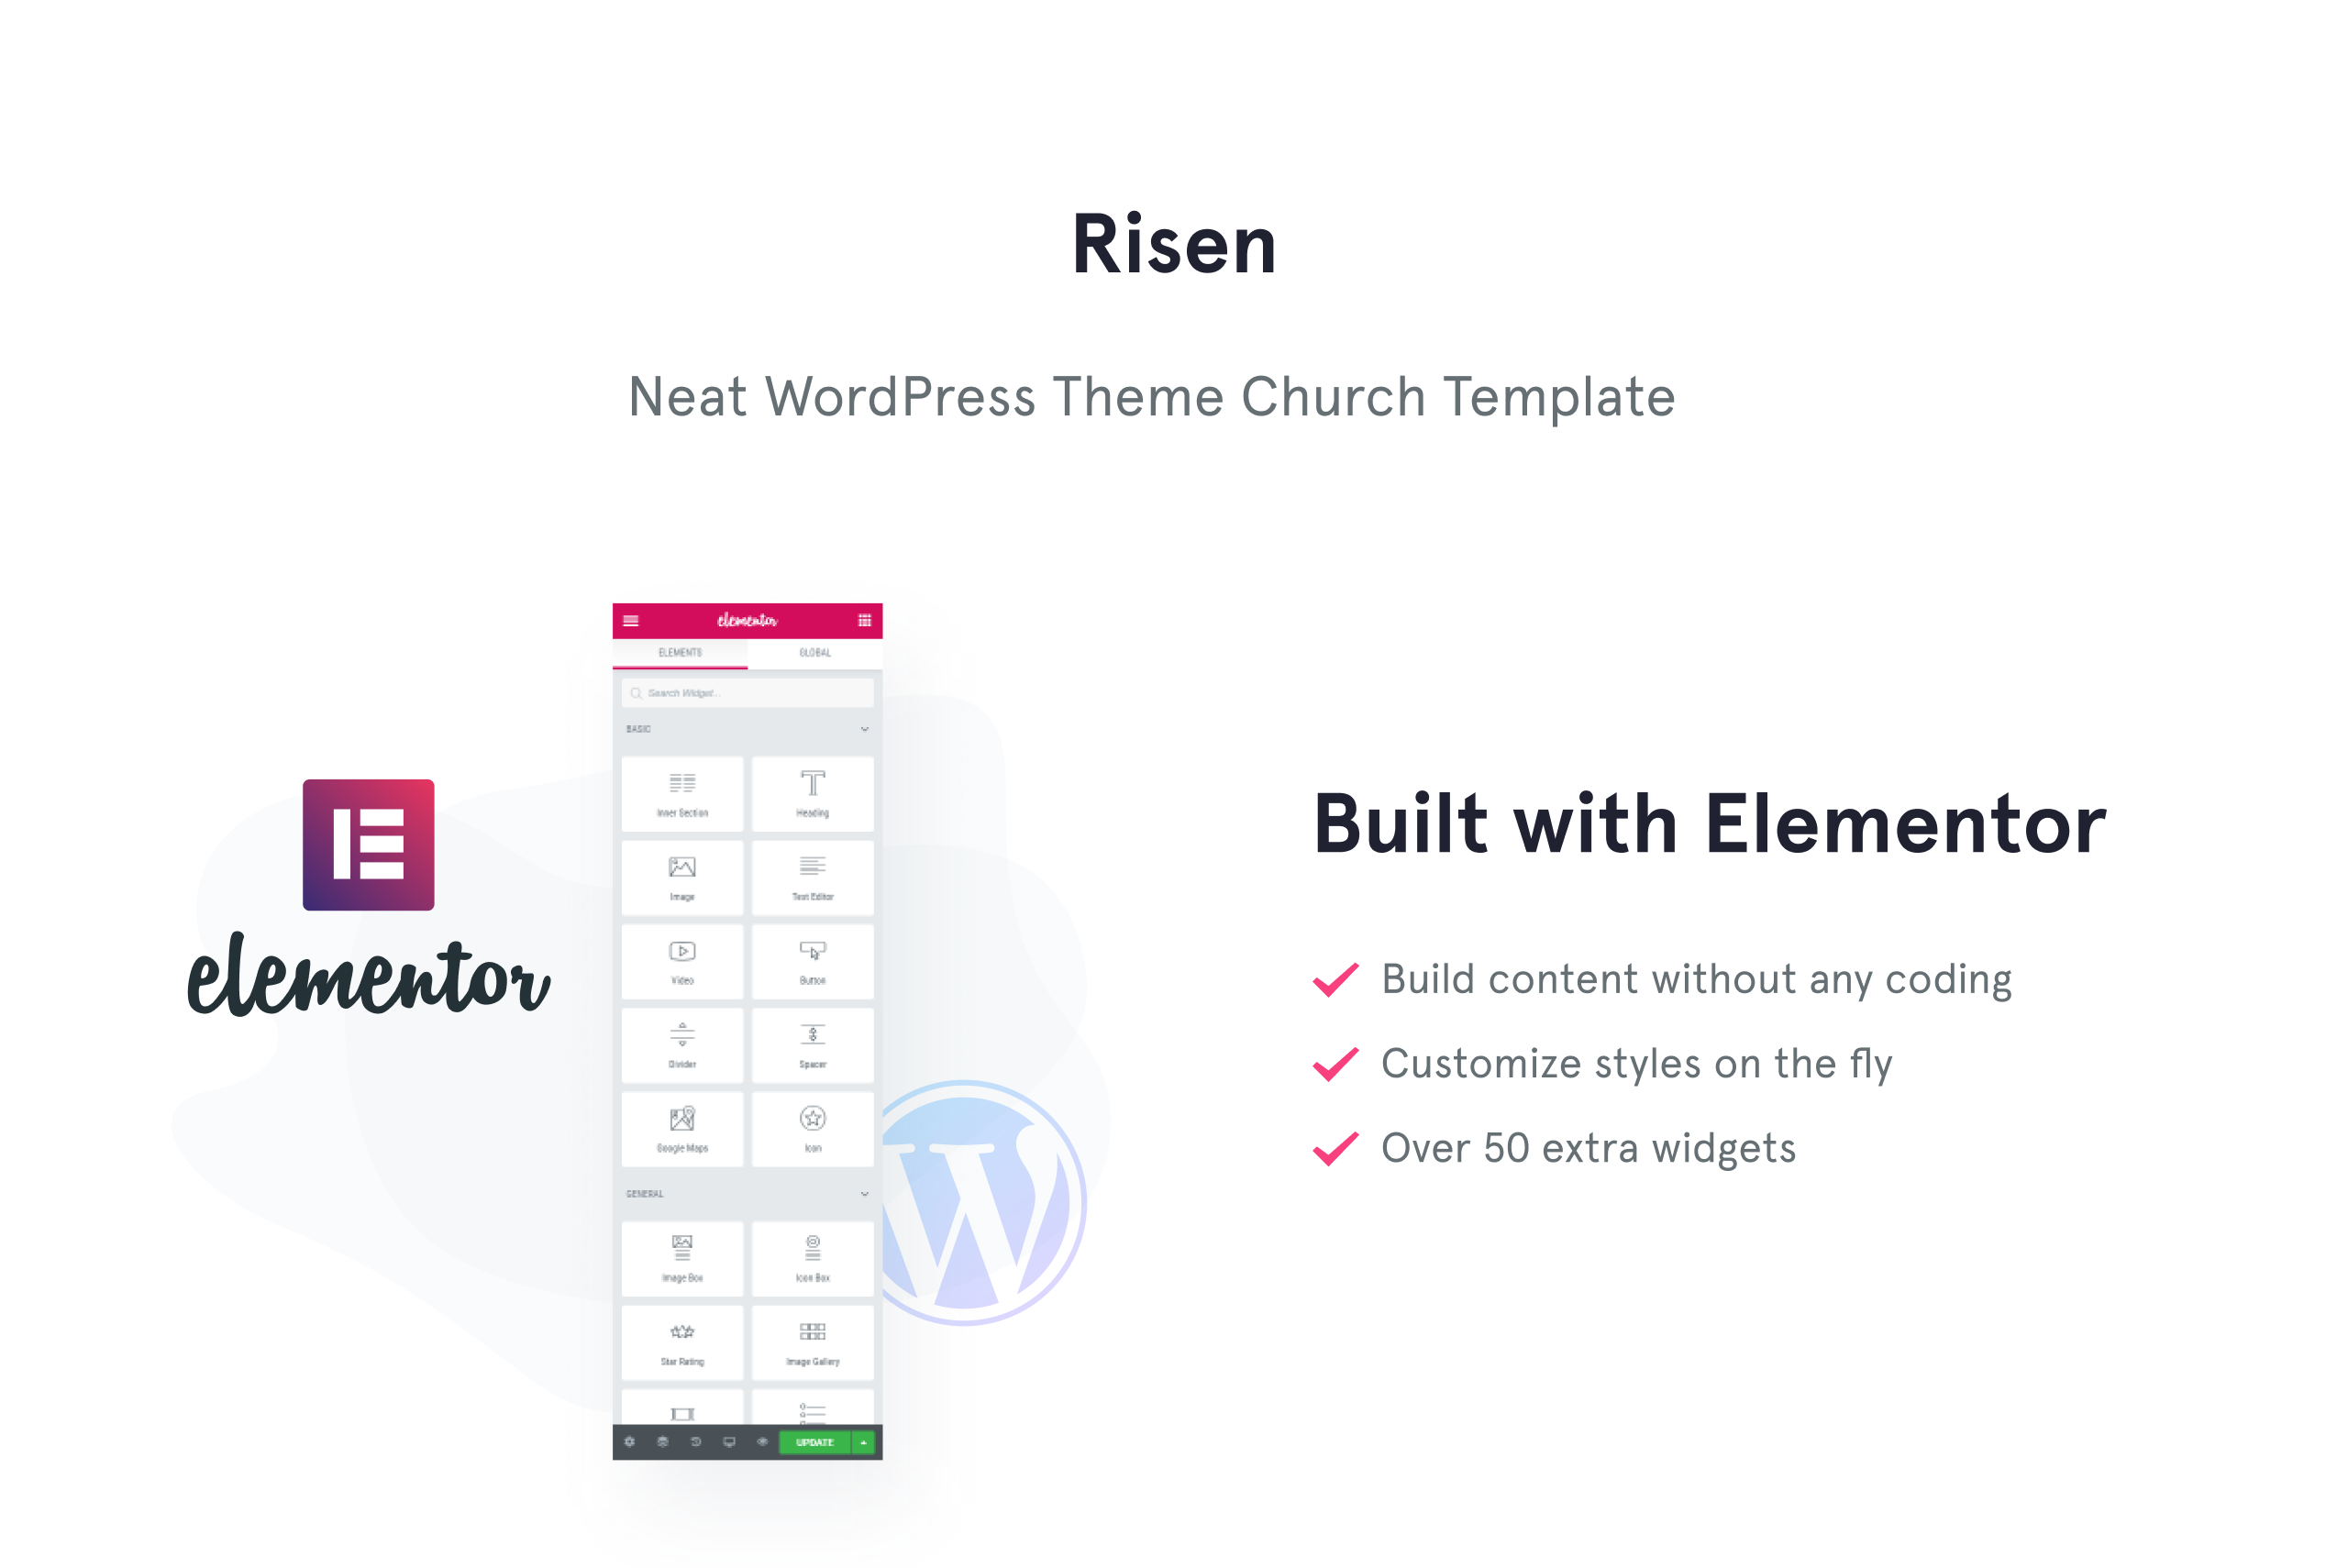 Risen - Neat WordPress Theme Church WordPress Theme